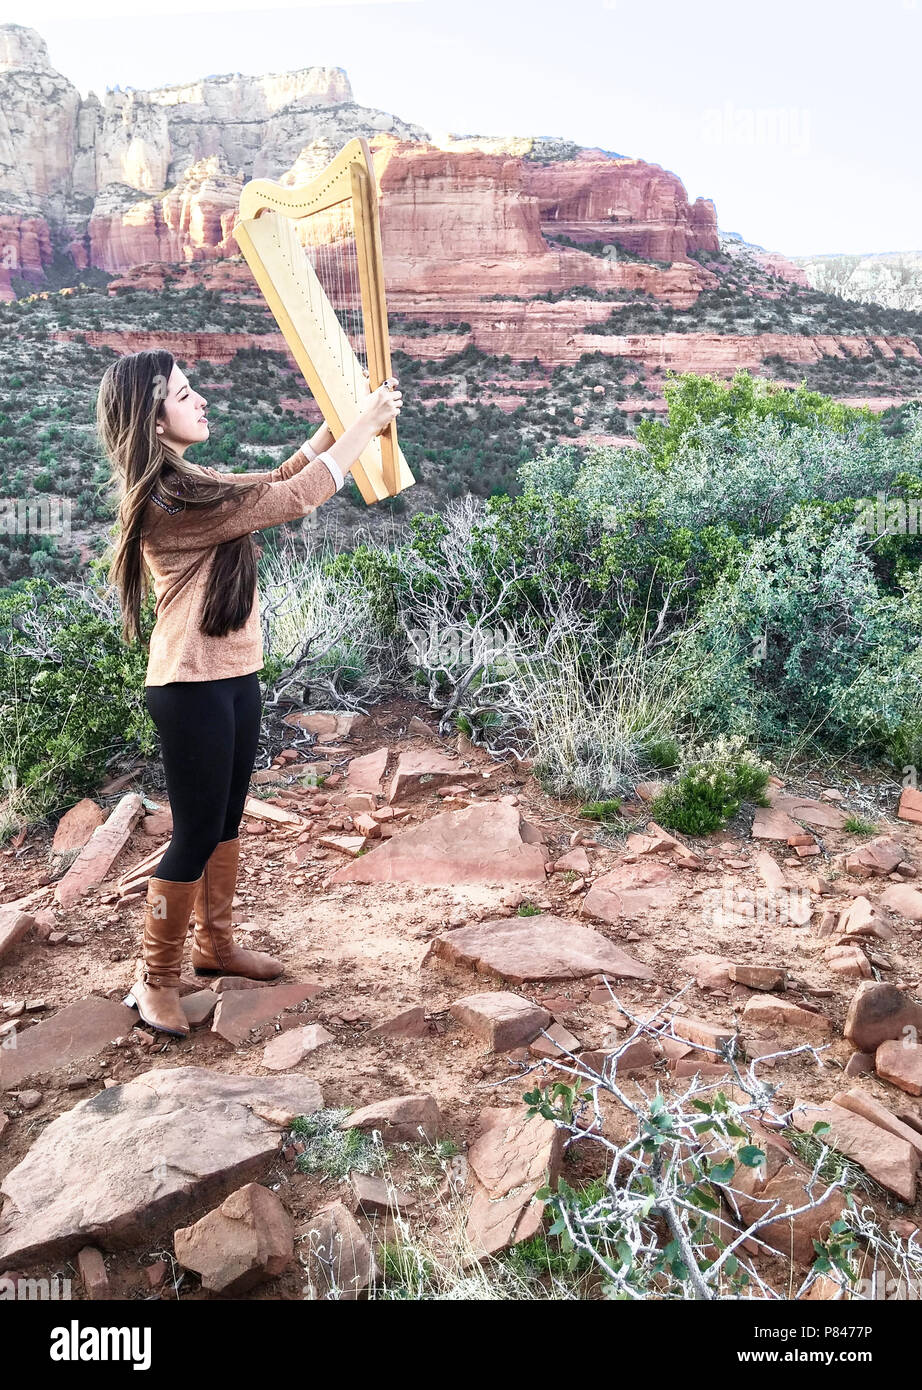 Aeolian Wind Harp raised to the breeze in mystical, red rock desert in Sedona, Arizona. A beautiful young model-released woman plays the instrument - Stock Image